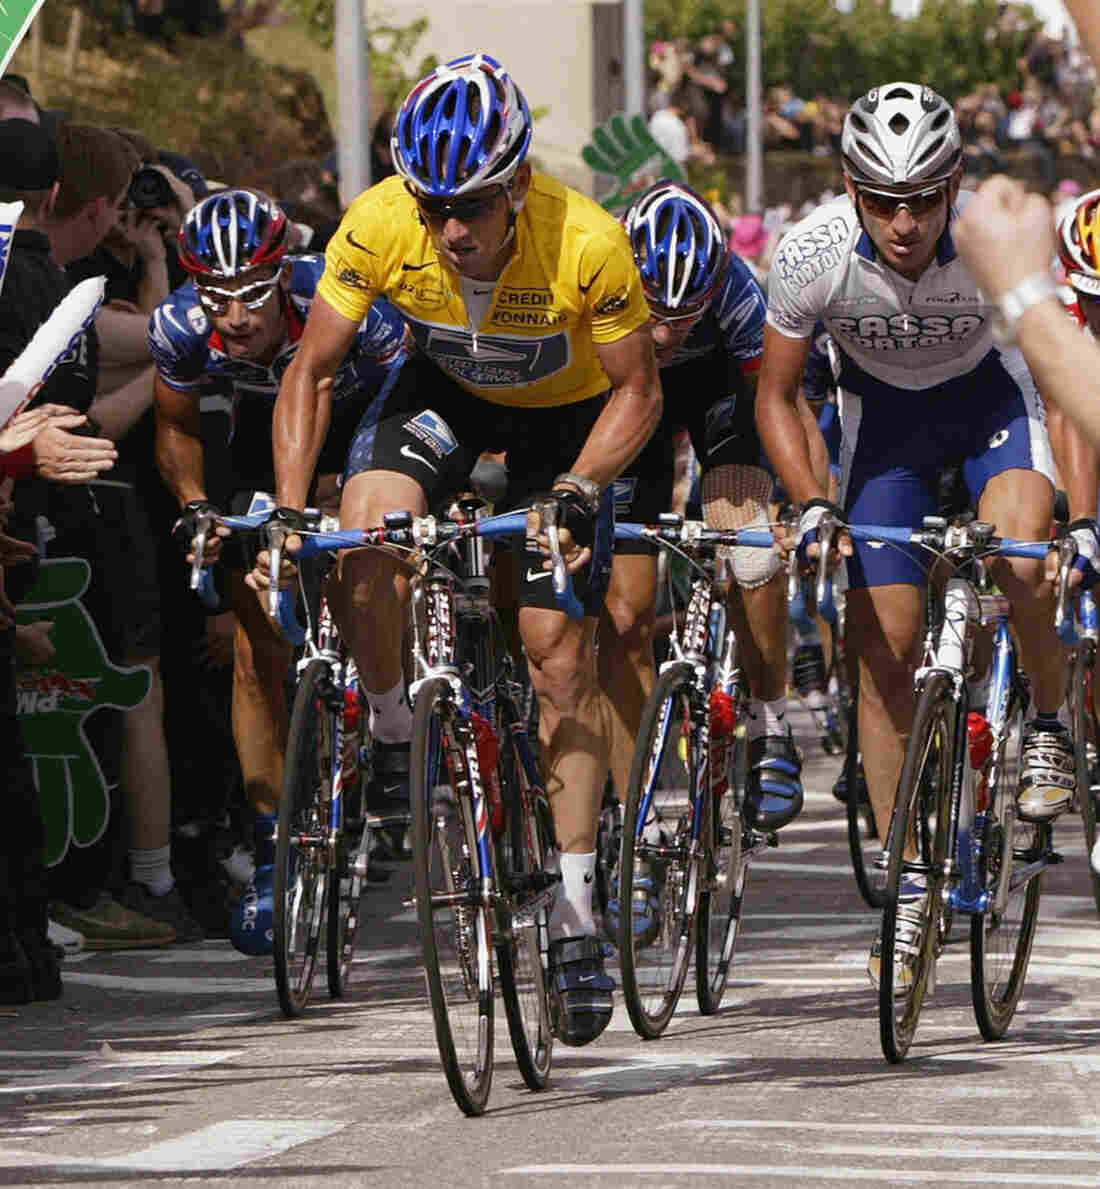 Lance Armstrong, in the yellow leader's jersey, during the 2002 Tour de France. Now, there's no winner of that race or the six others in which he finished first.